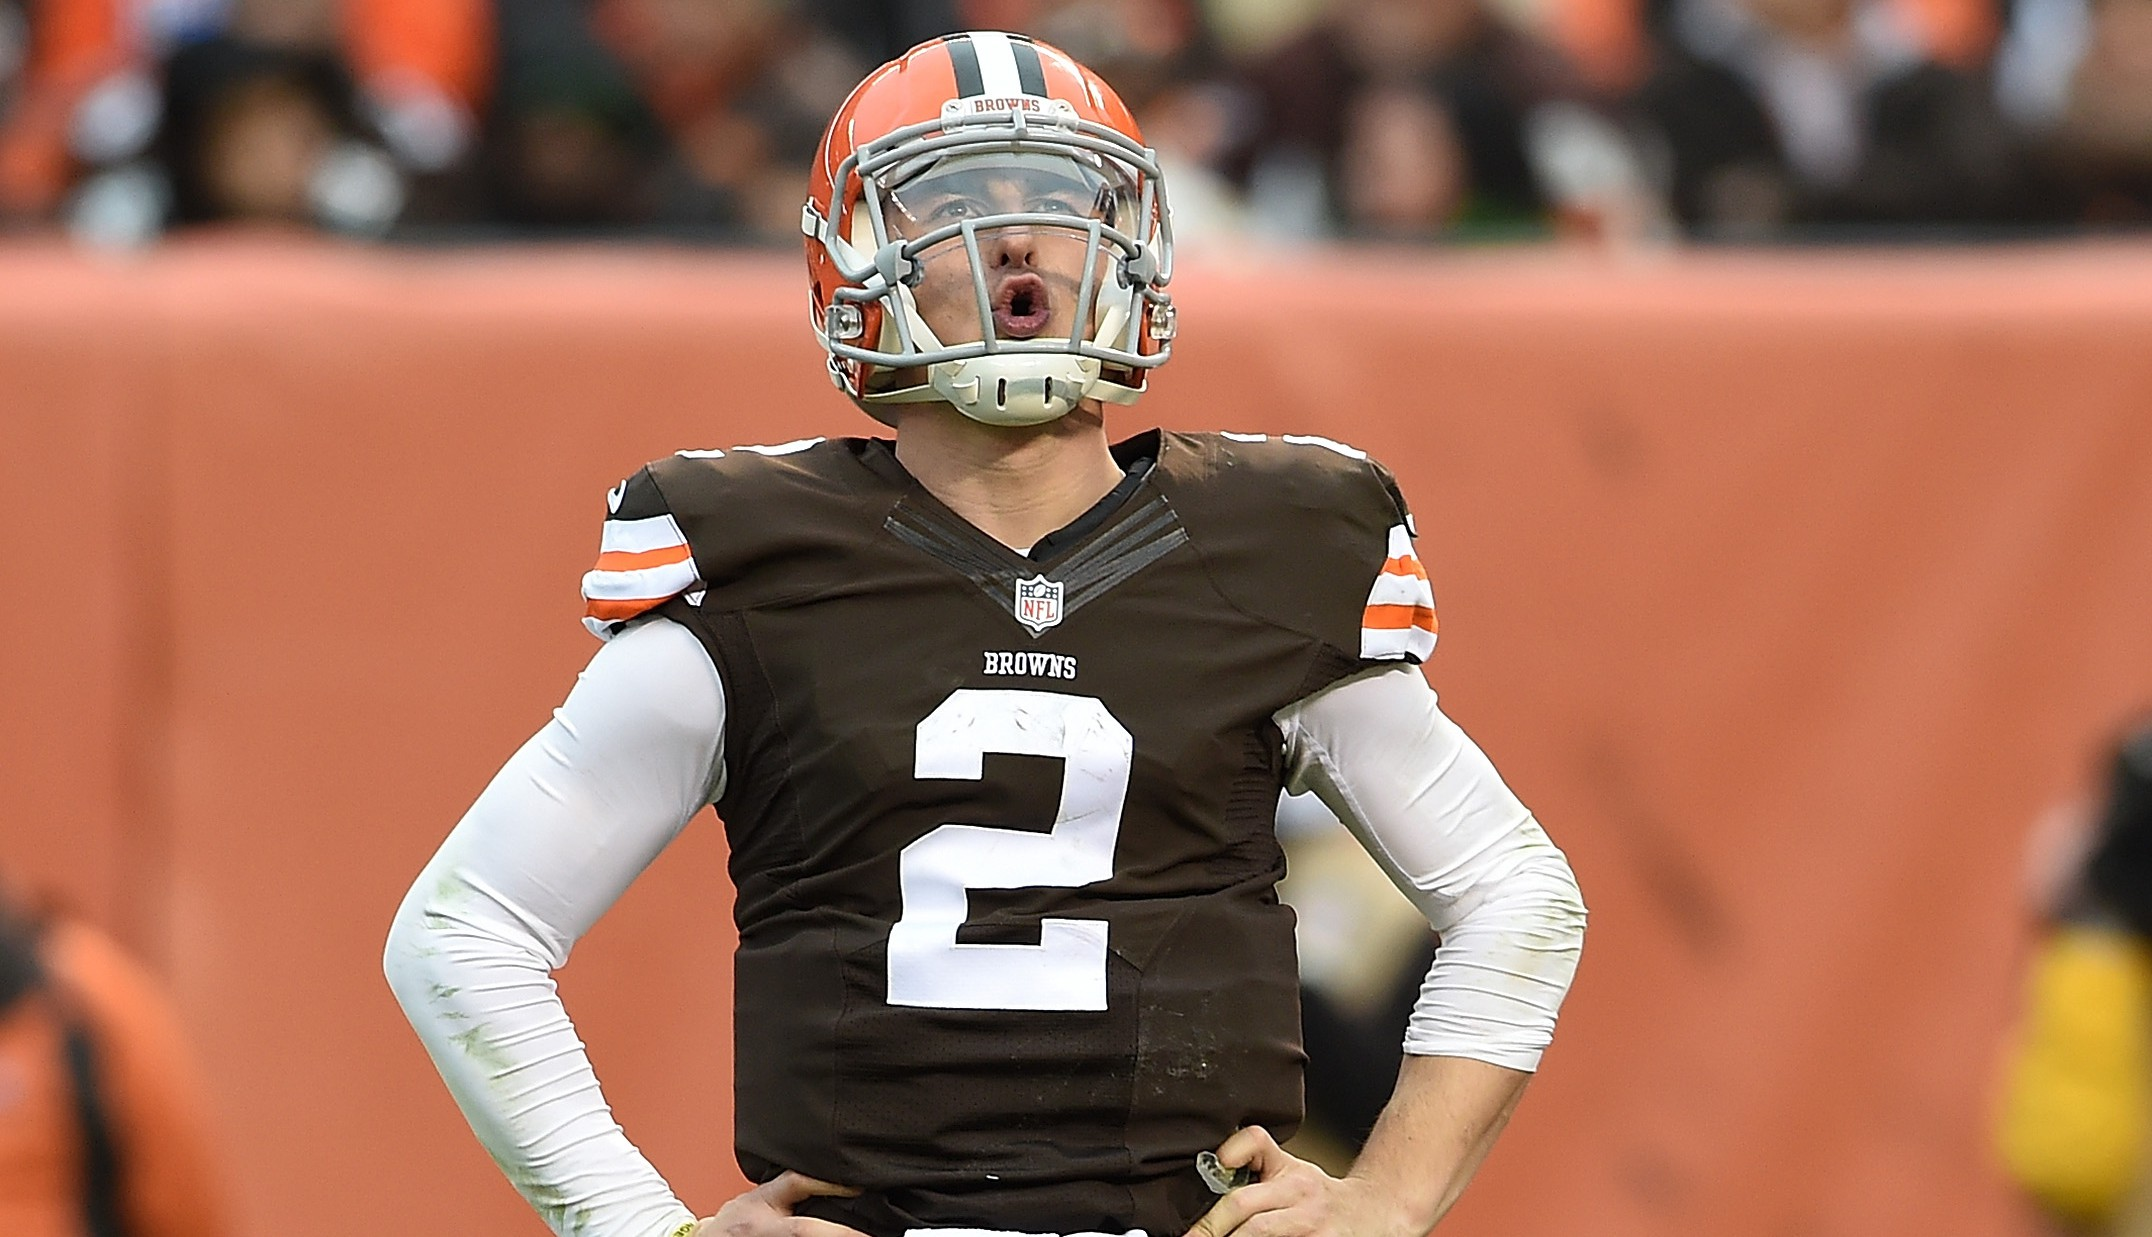 Johnny Manziel #2 of the Cleveland Browns reacts after being sacked during the third quarter against the Cincinnati Bengals at FirstEnergy Stadium on December 14, 2014 in Cleveland, Ohio.  (Photo by Jason Miller/Getty Images)